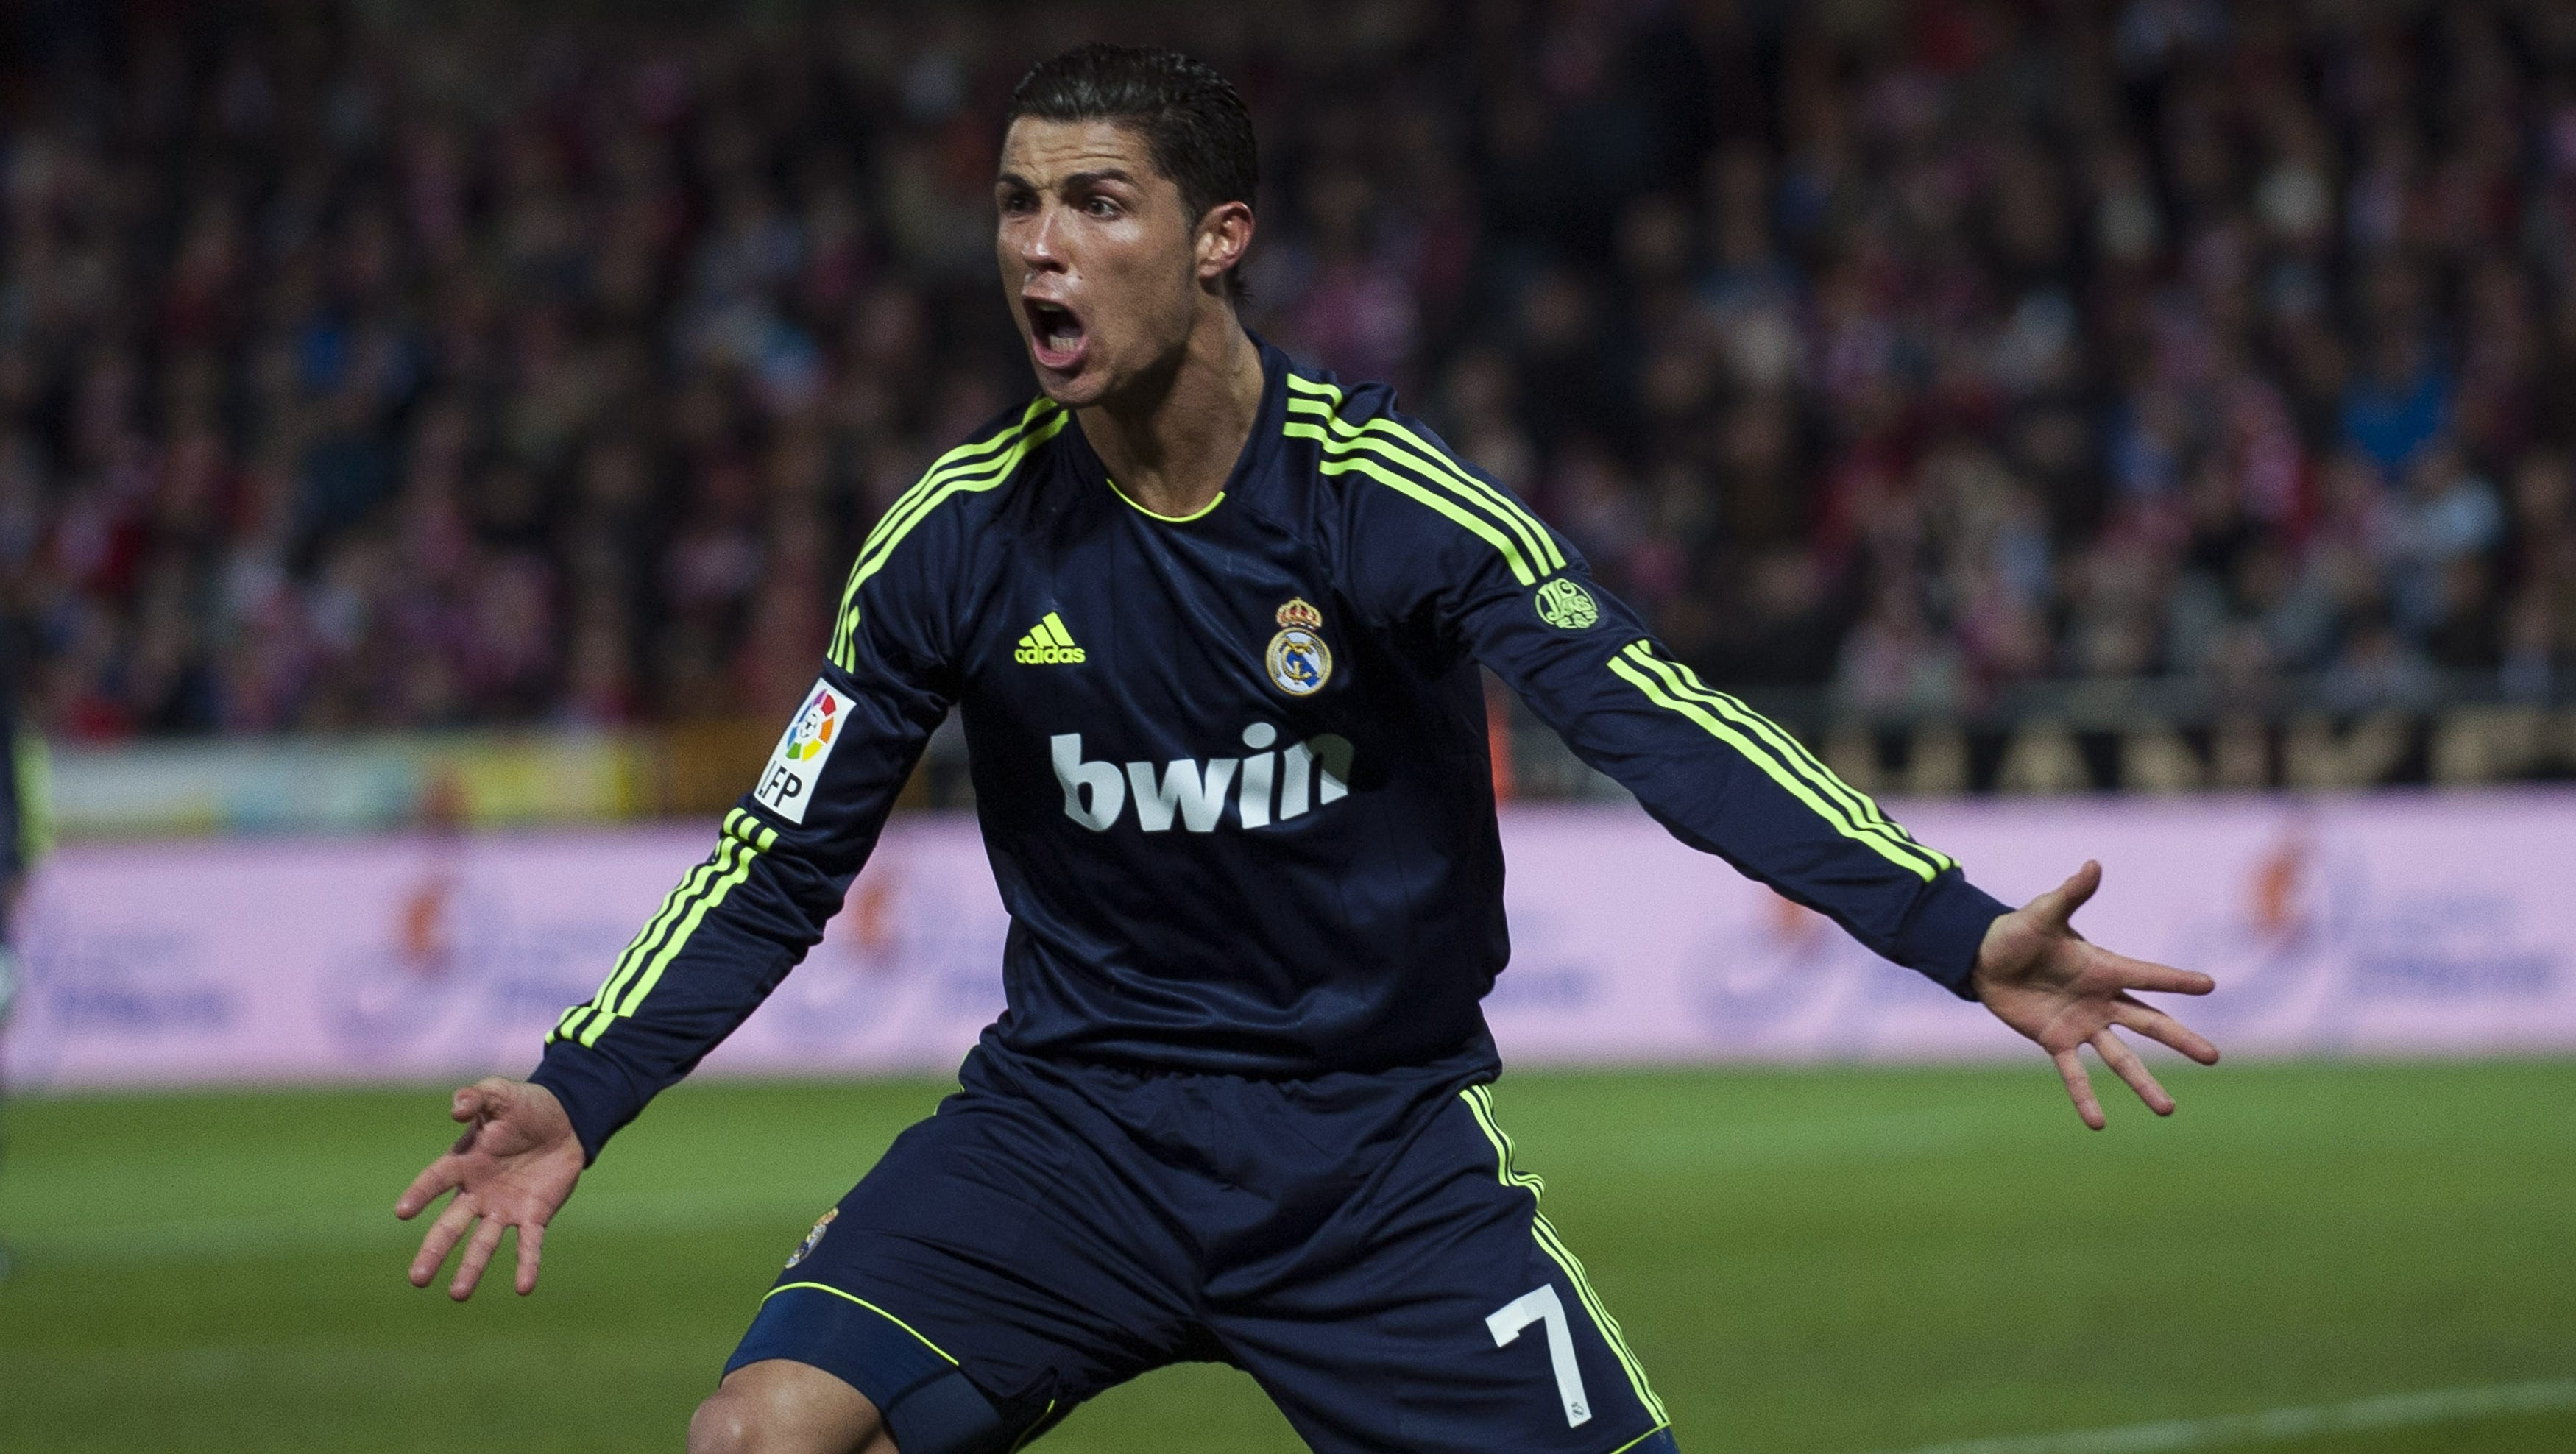 Cristiano Ronaldo Scores 1st Own Goal In Real Madrid Loss